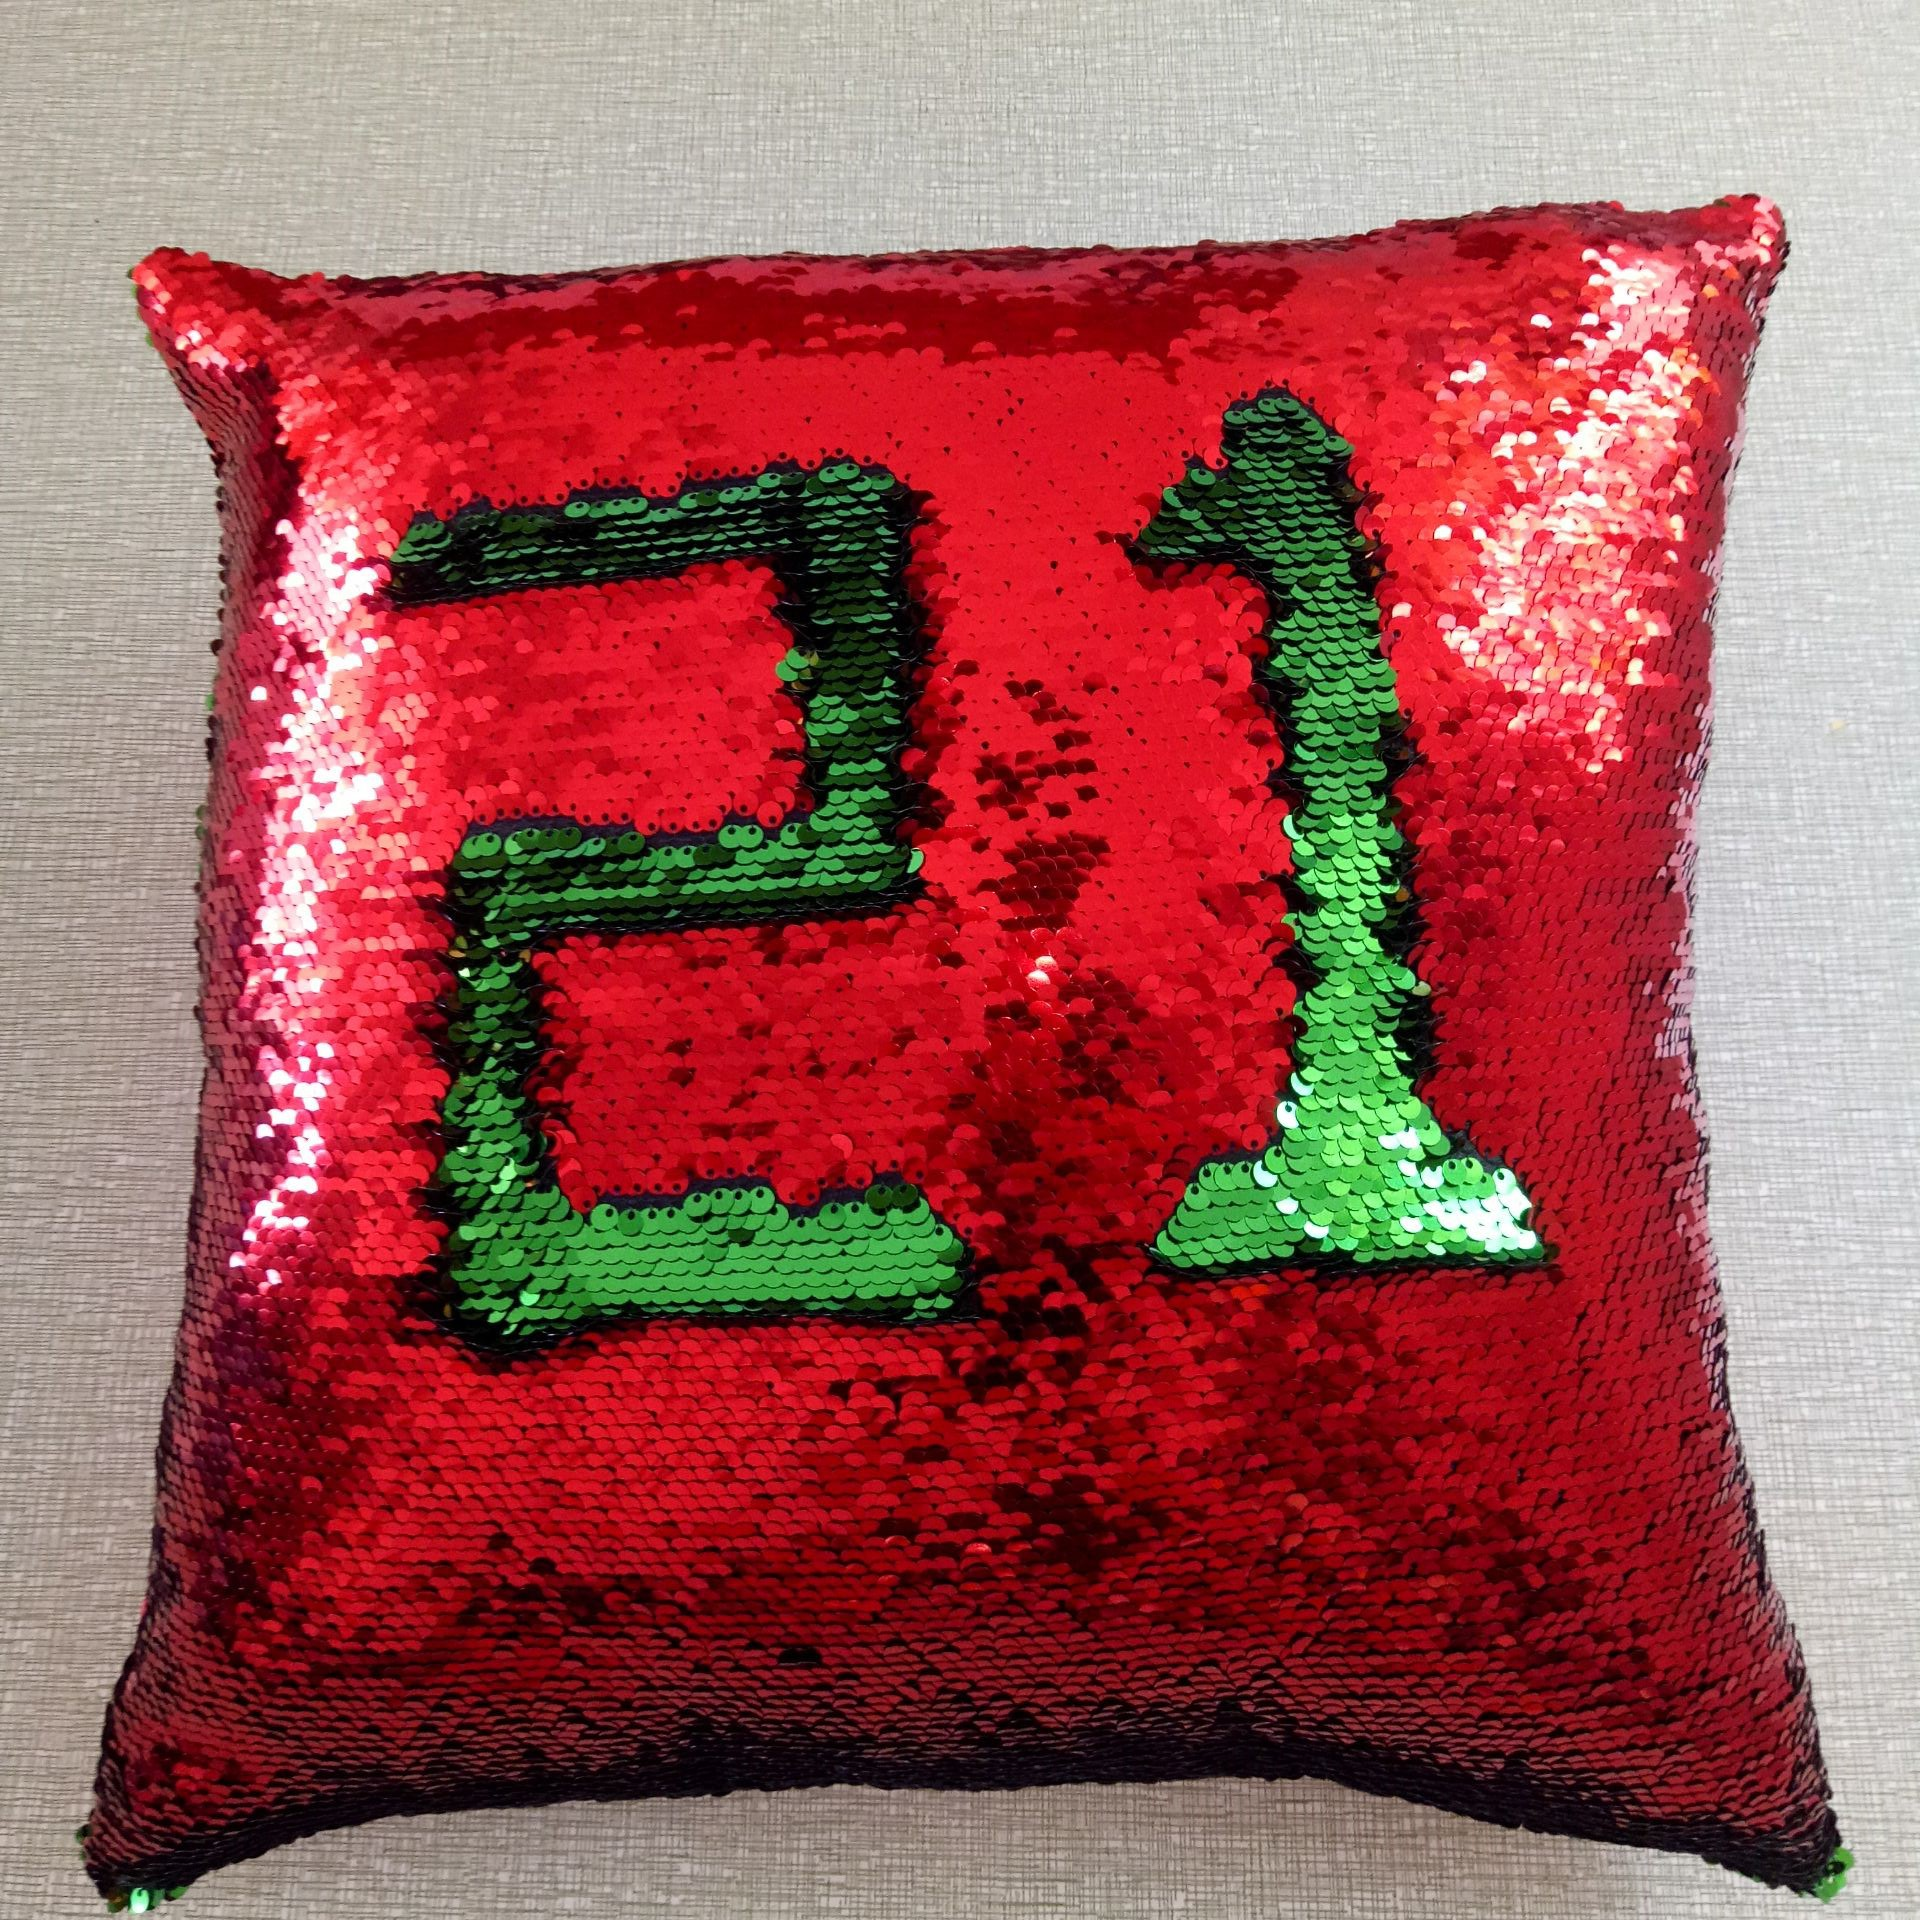 sequins pillowcase for two-color sequin pillow mermaid magic DIY cushion pillowcase onely covers (no Core)